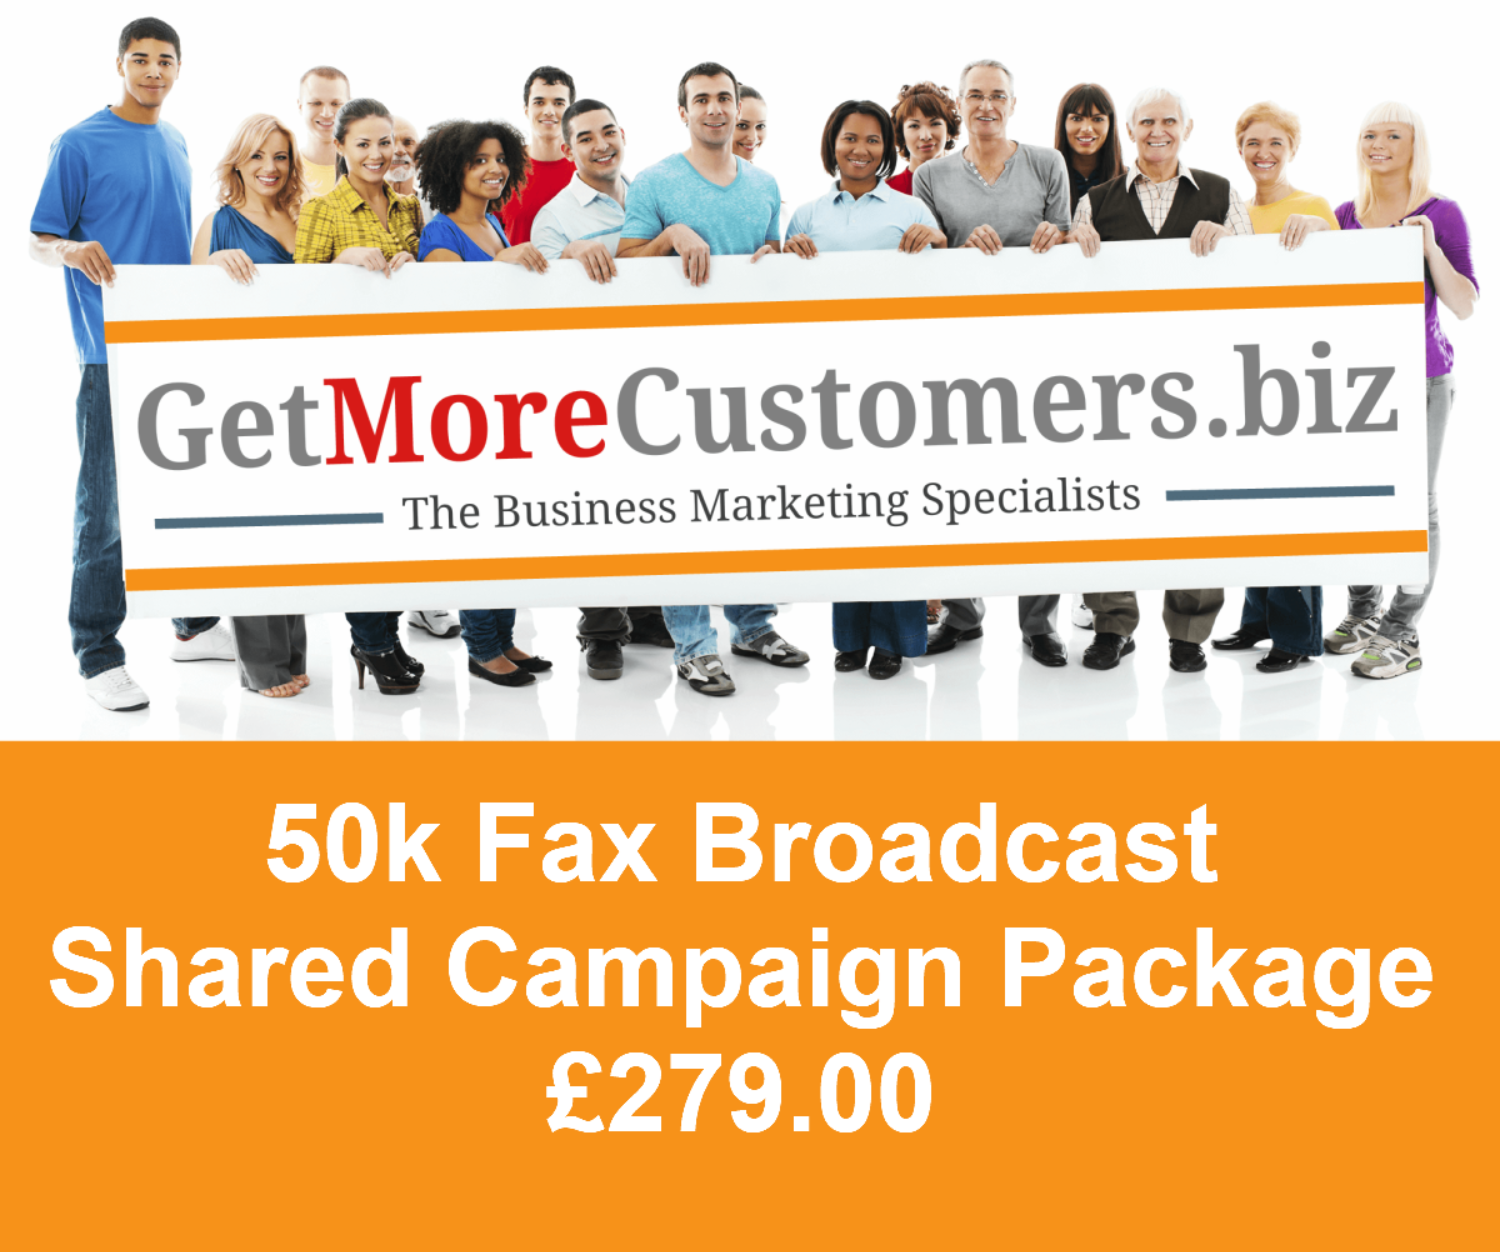 50,000 Shared Fax Broadcast Package - £279.00